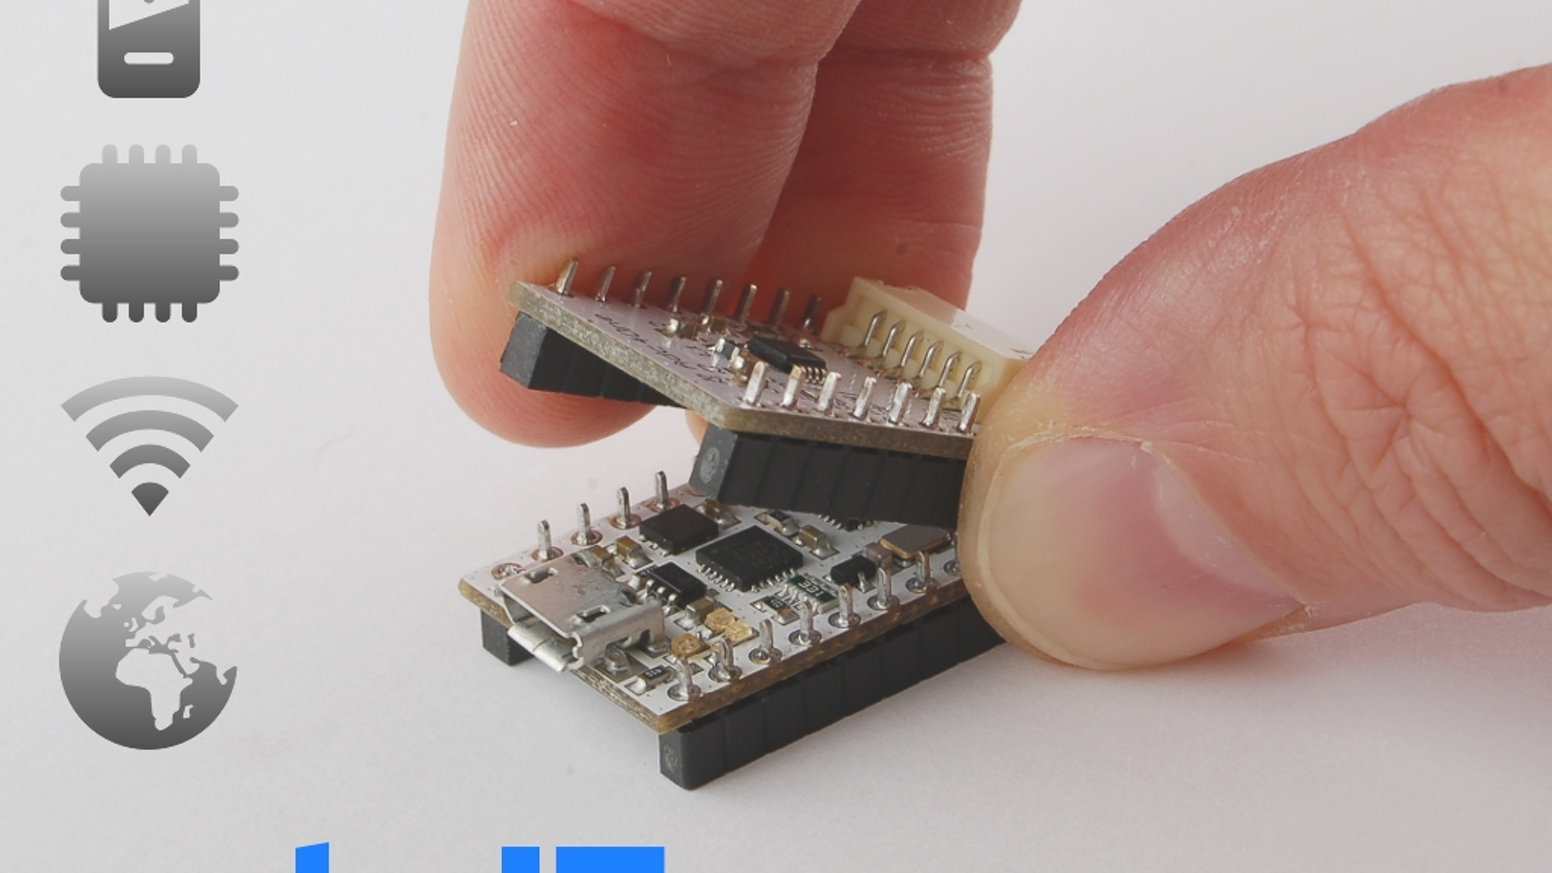 Nodeit The Worlds Smallest And Expandable Iot System By Pontus Simple Solar Tracking Circuit Page 2 Electronics Forum Circuits A Super Cool Small Lego Like Building Block For Really Awesome